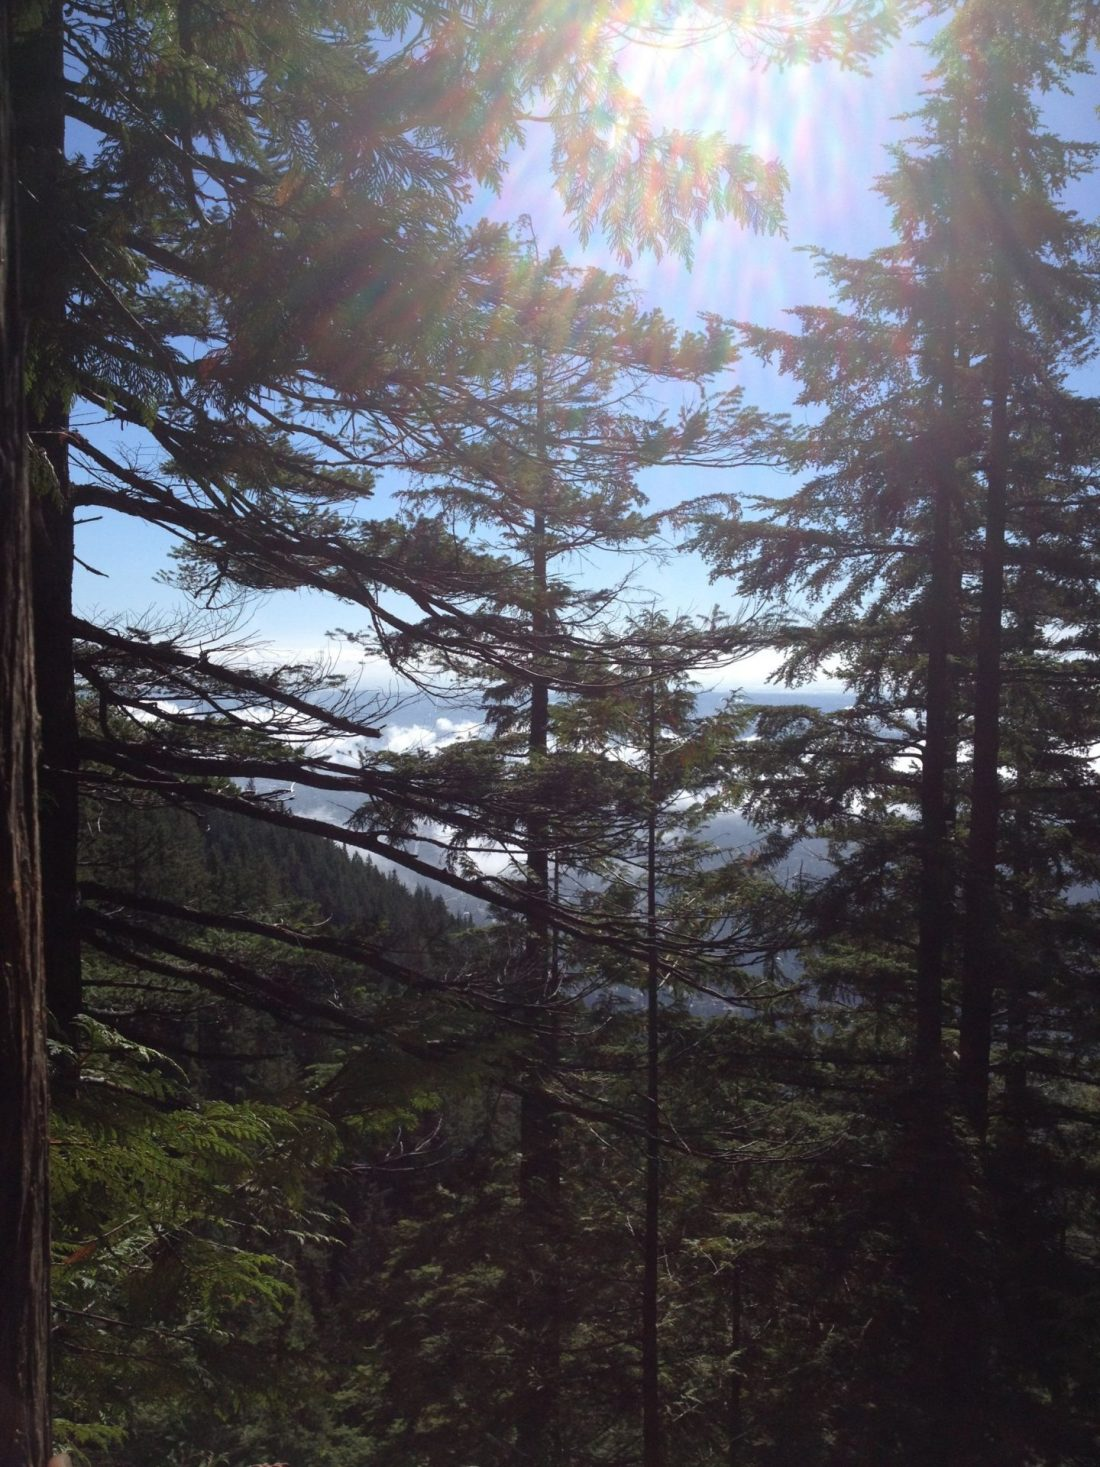 Views from the Grouse Grind, Vancouver